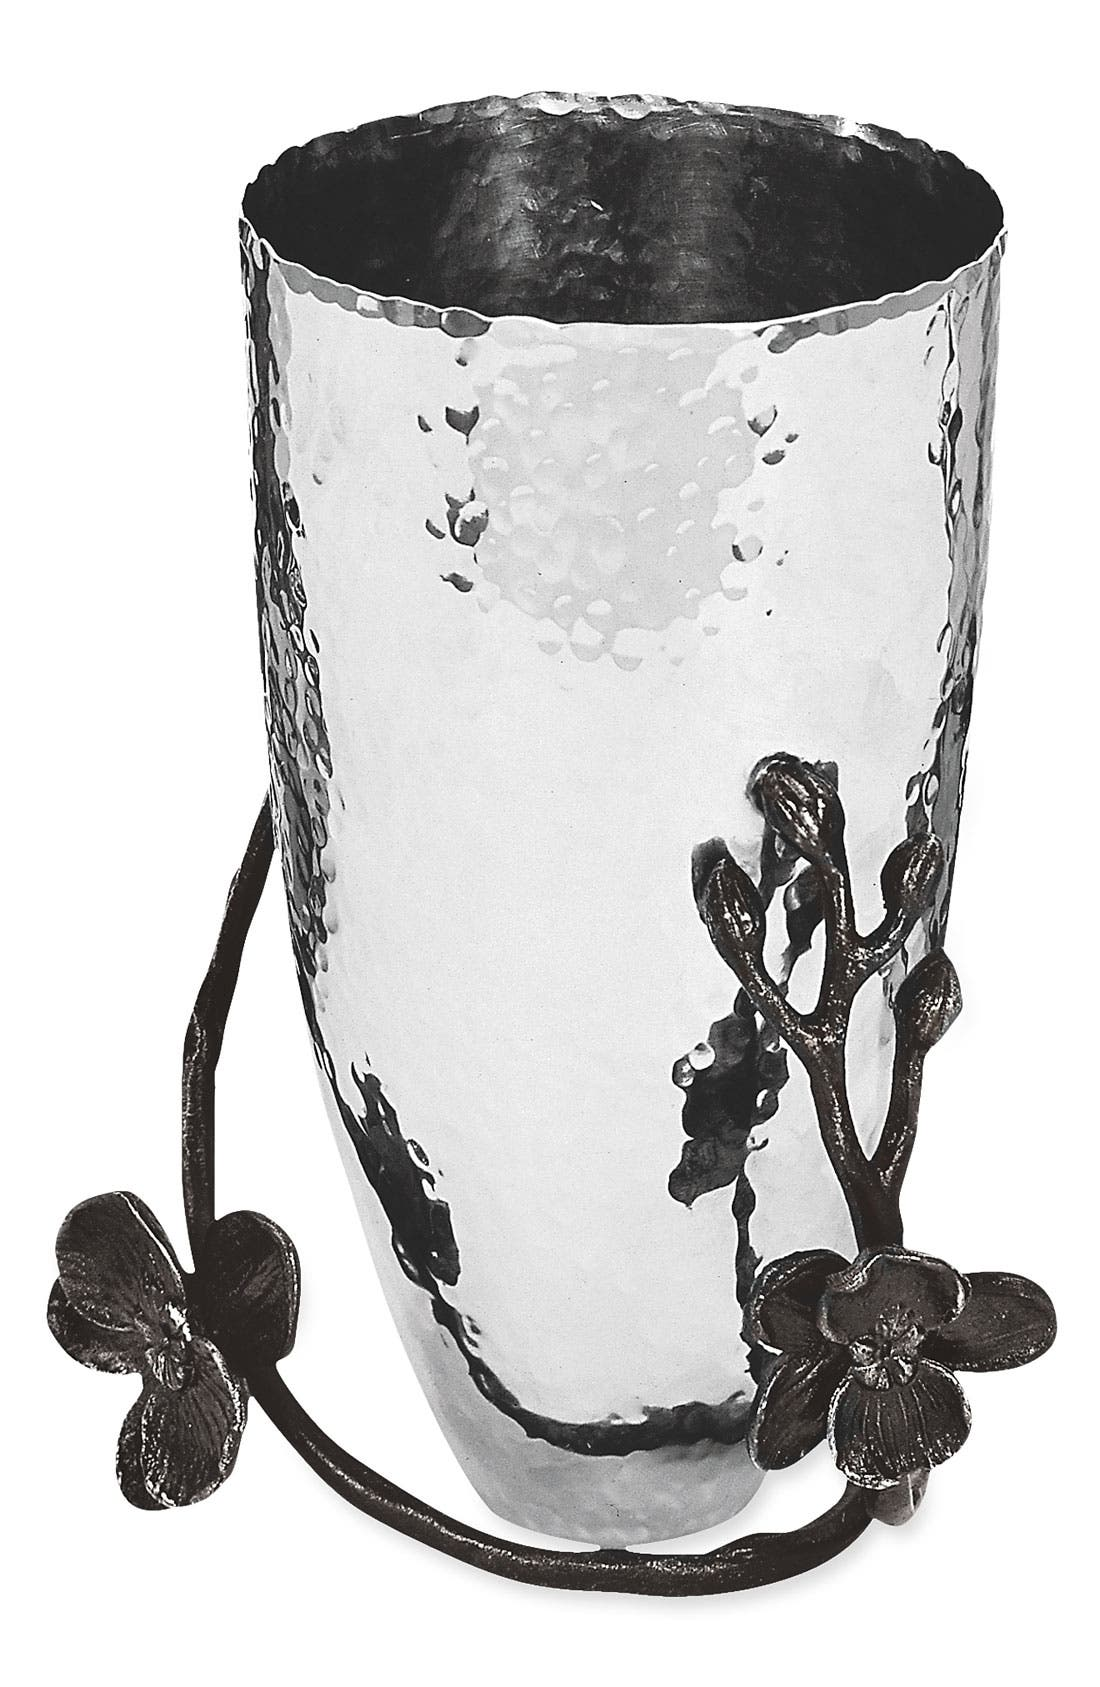 Alternate Image 1 Selected - Michael Aram 'Black Orchid' Vase